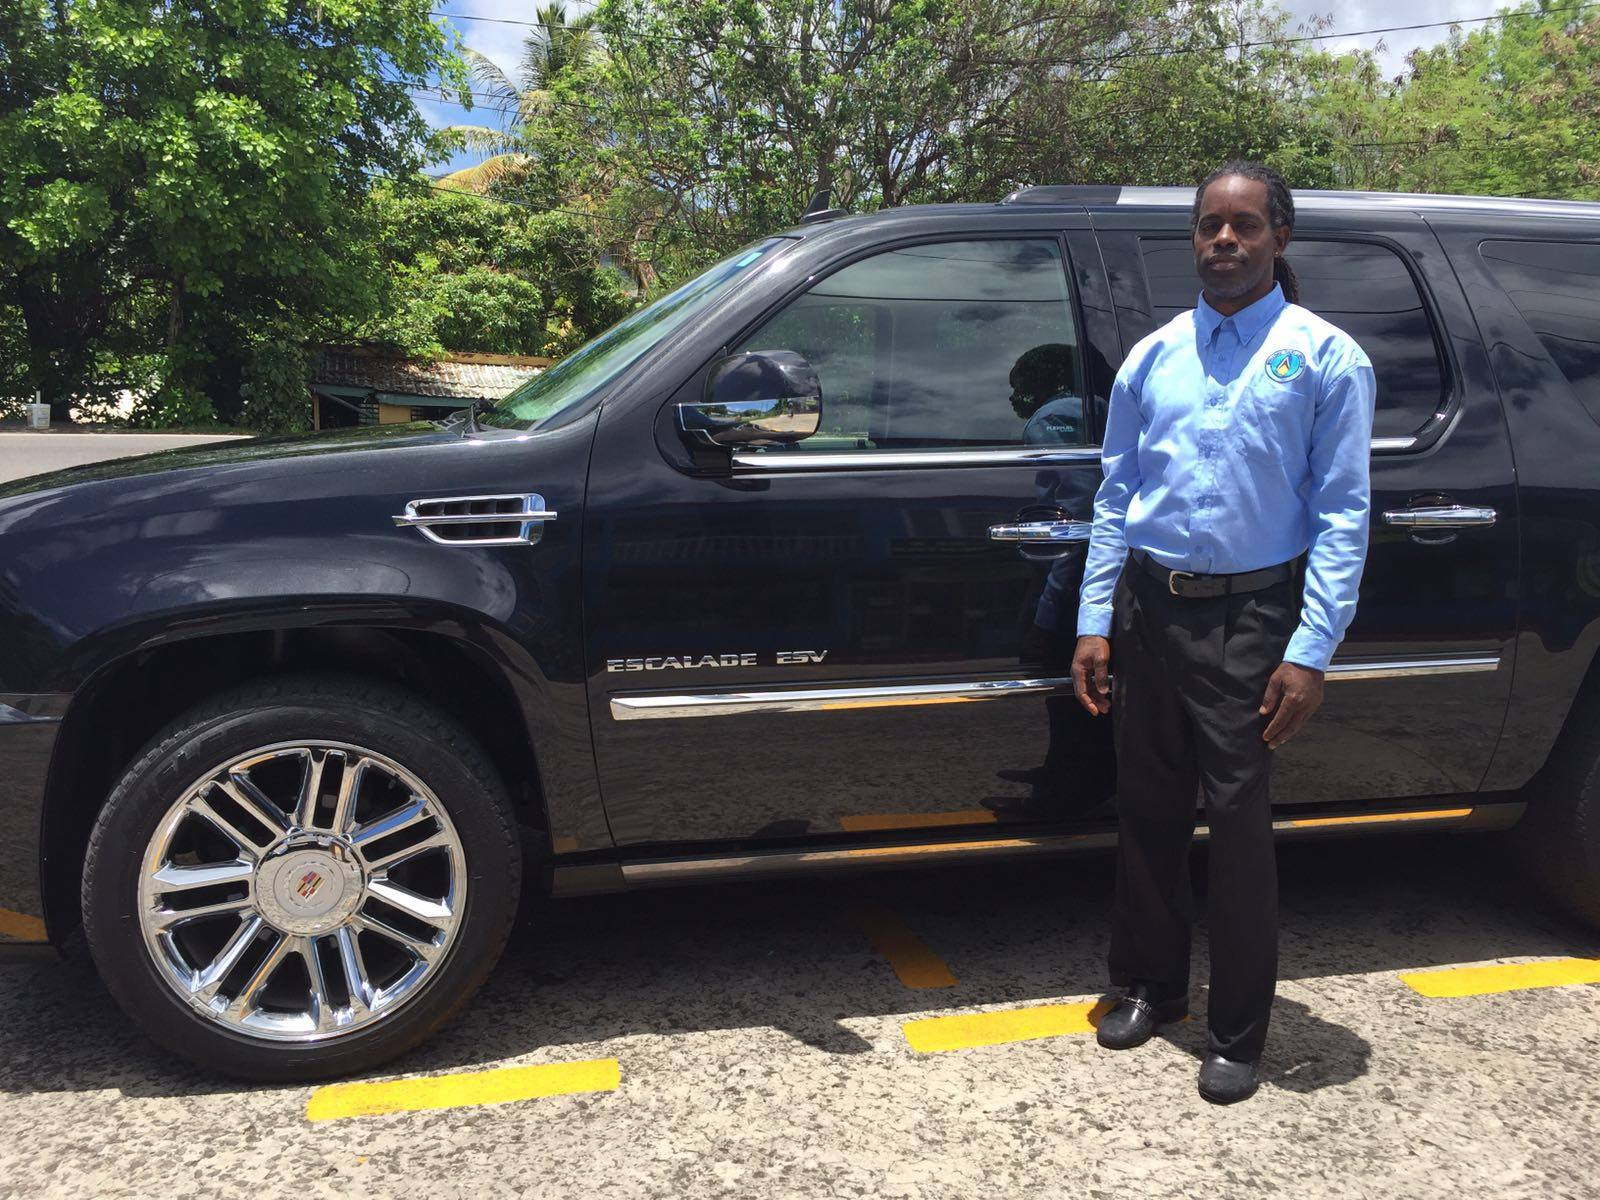 A Saint Lucian taxi firm has become the first tourism taxi company